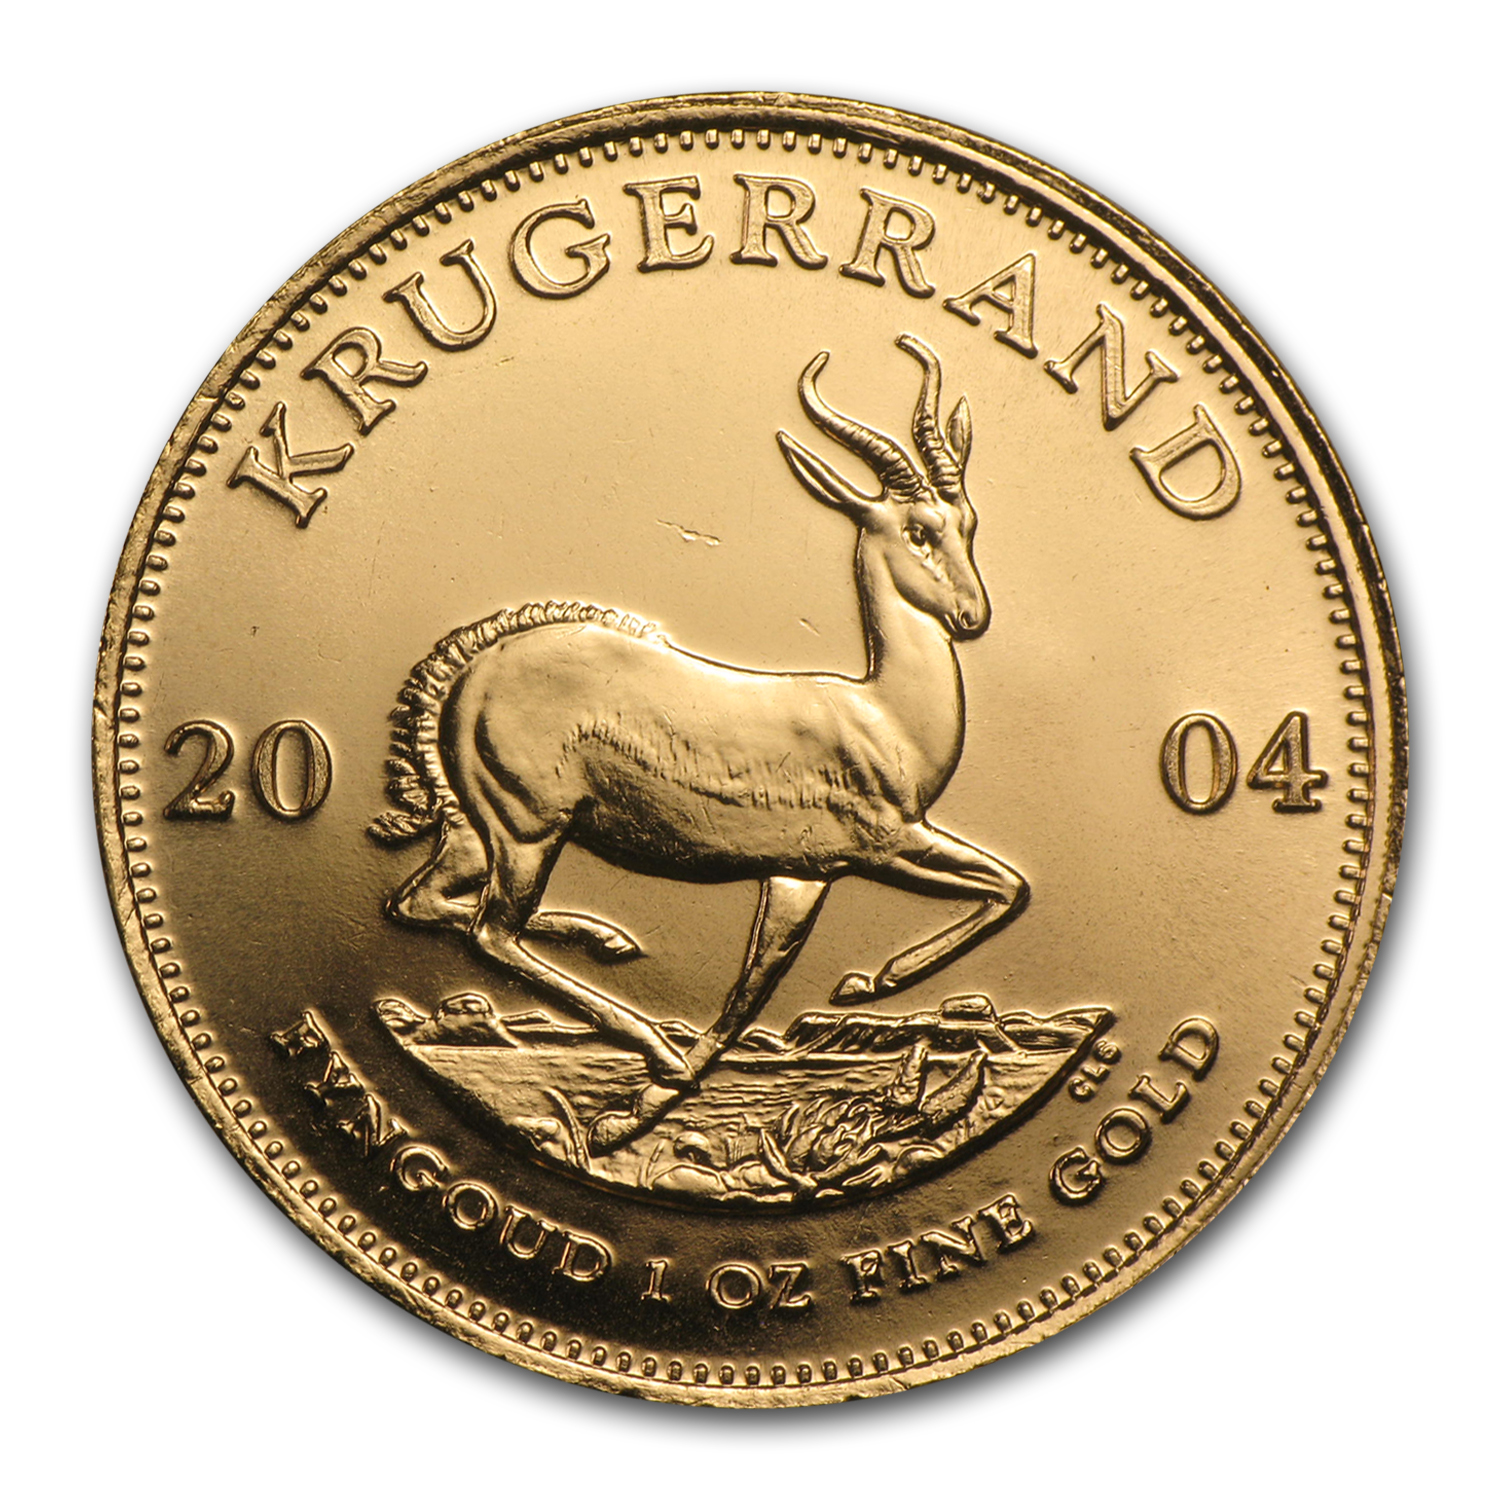 2004 South Africa 1 oz Gold Krugerrand